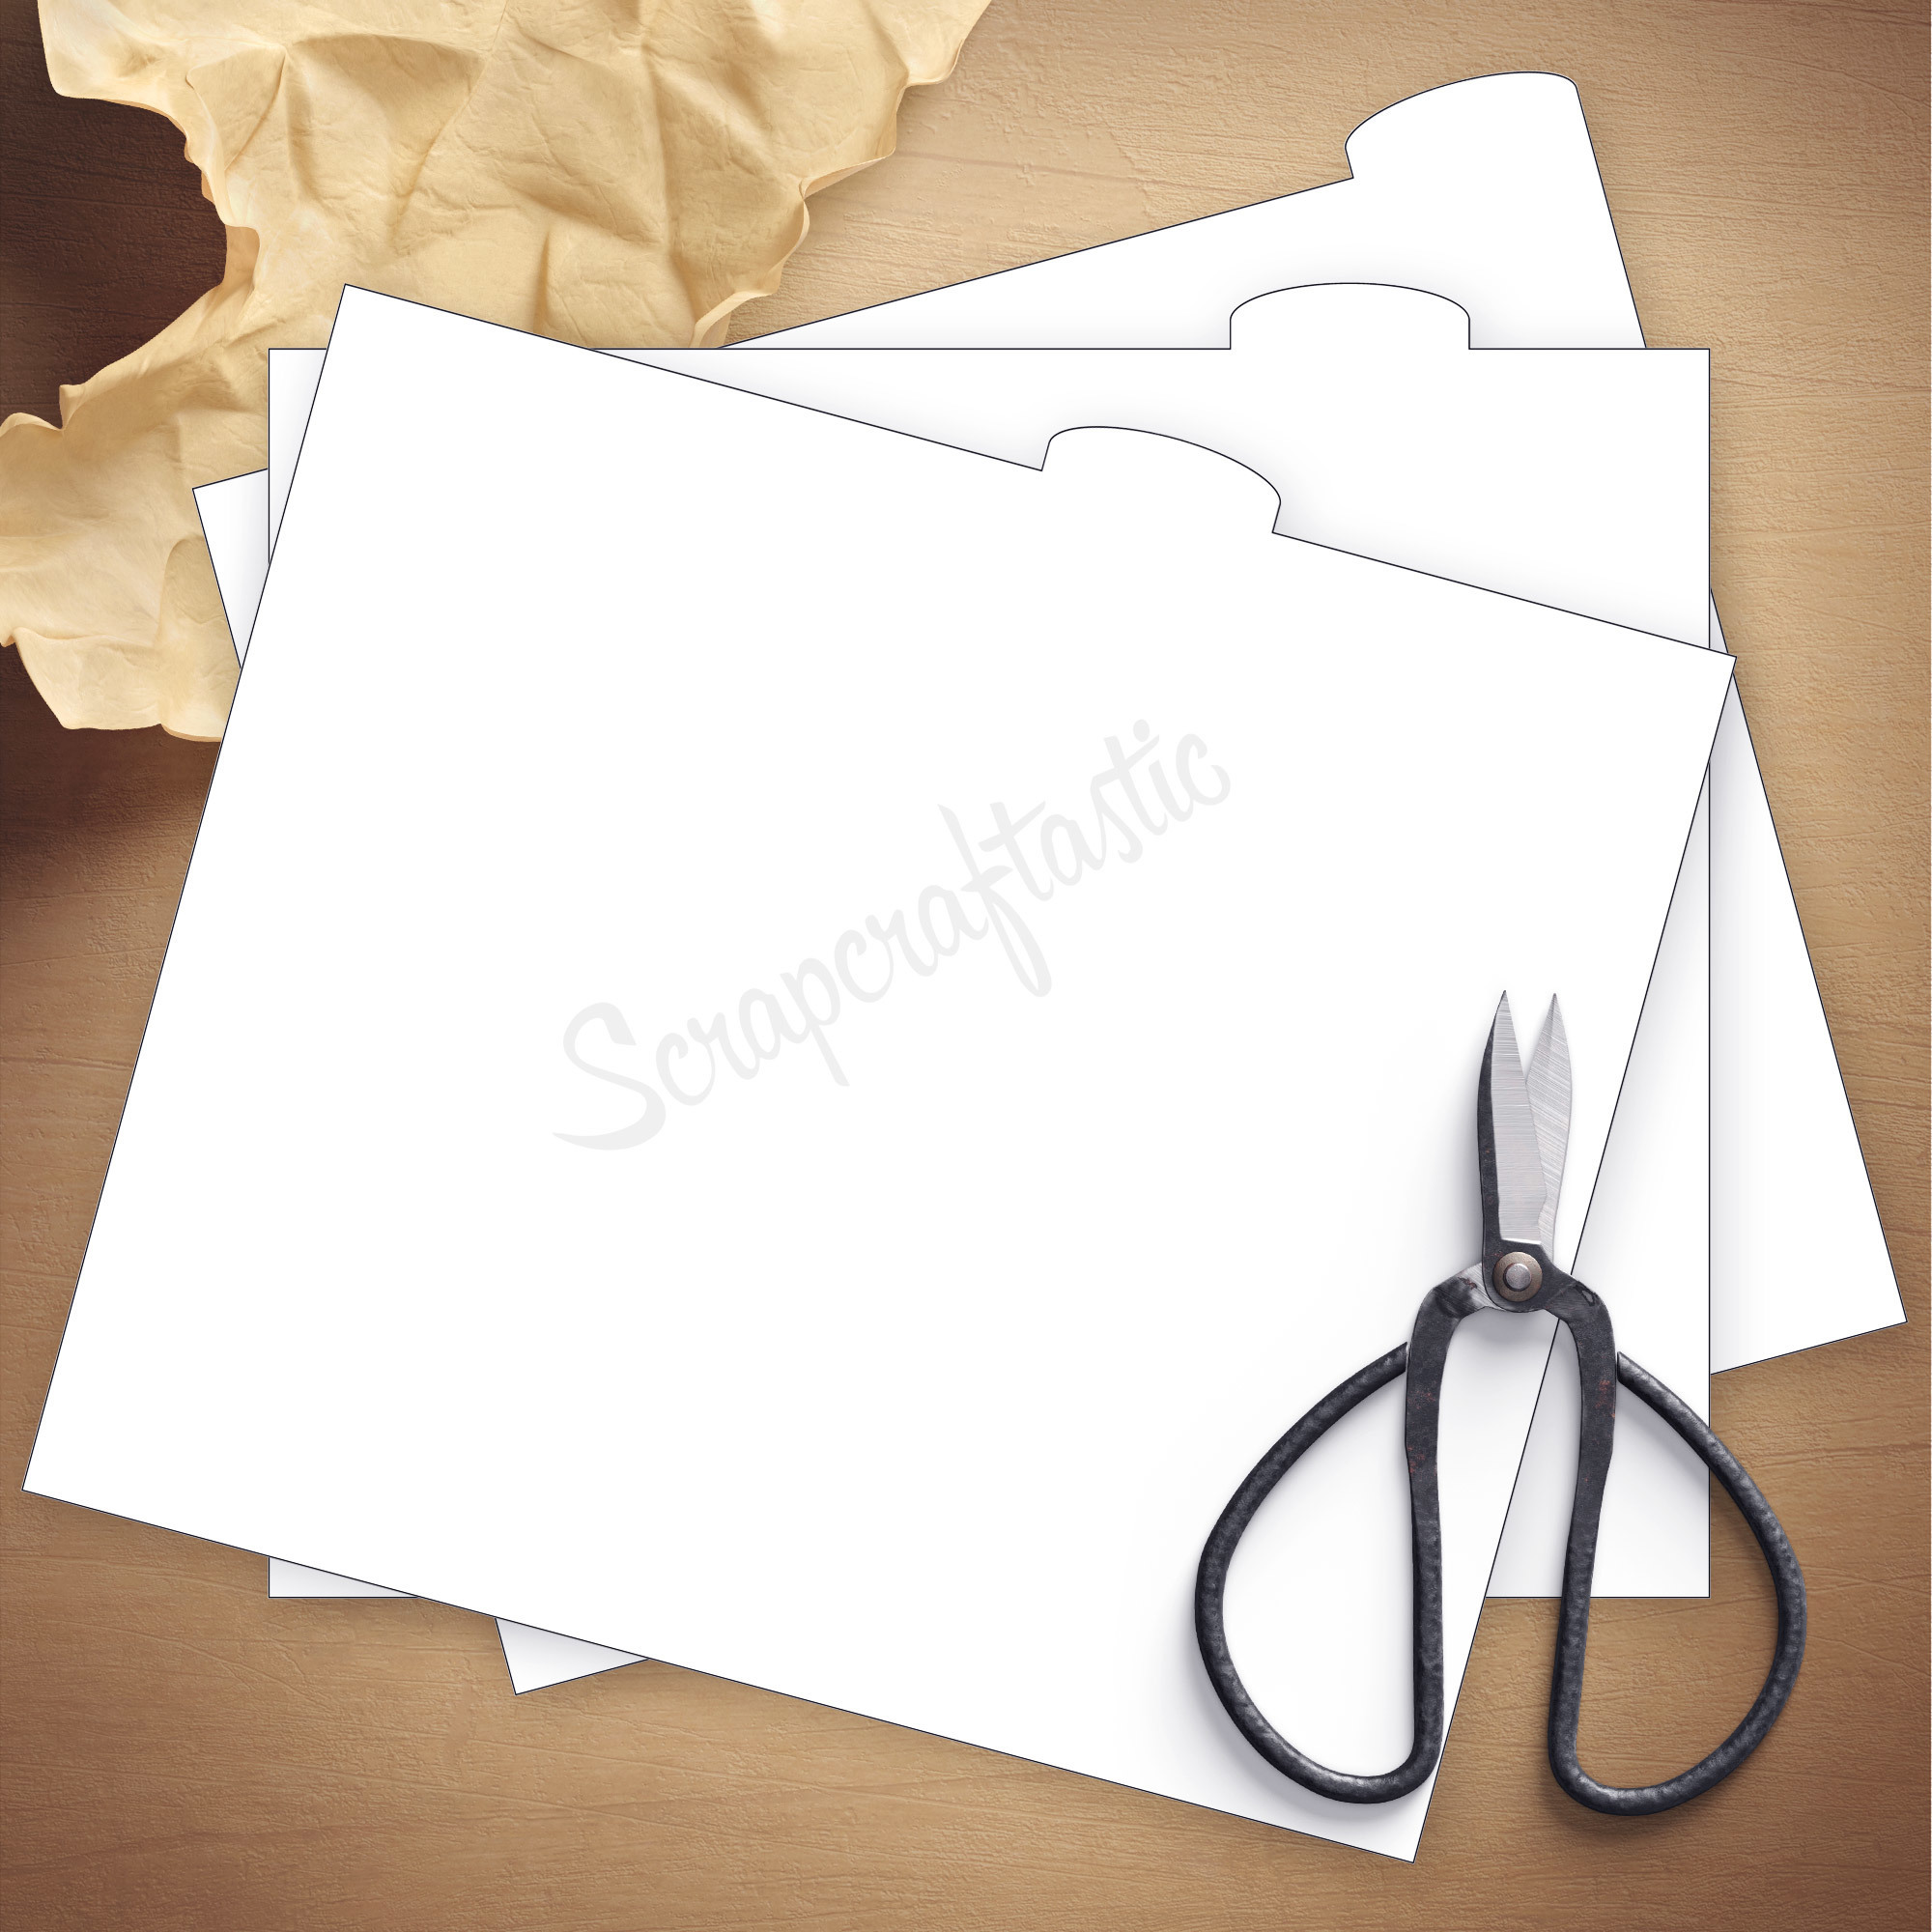 3 Tab A6 Size Traveler's Notebook Cover Templates 08004